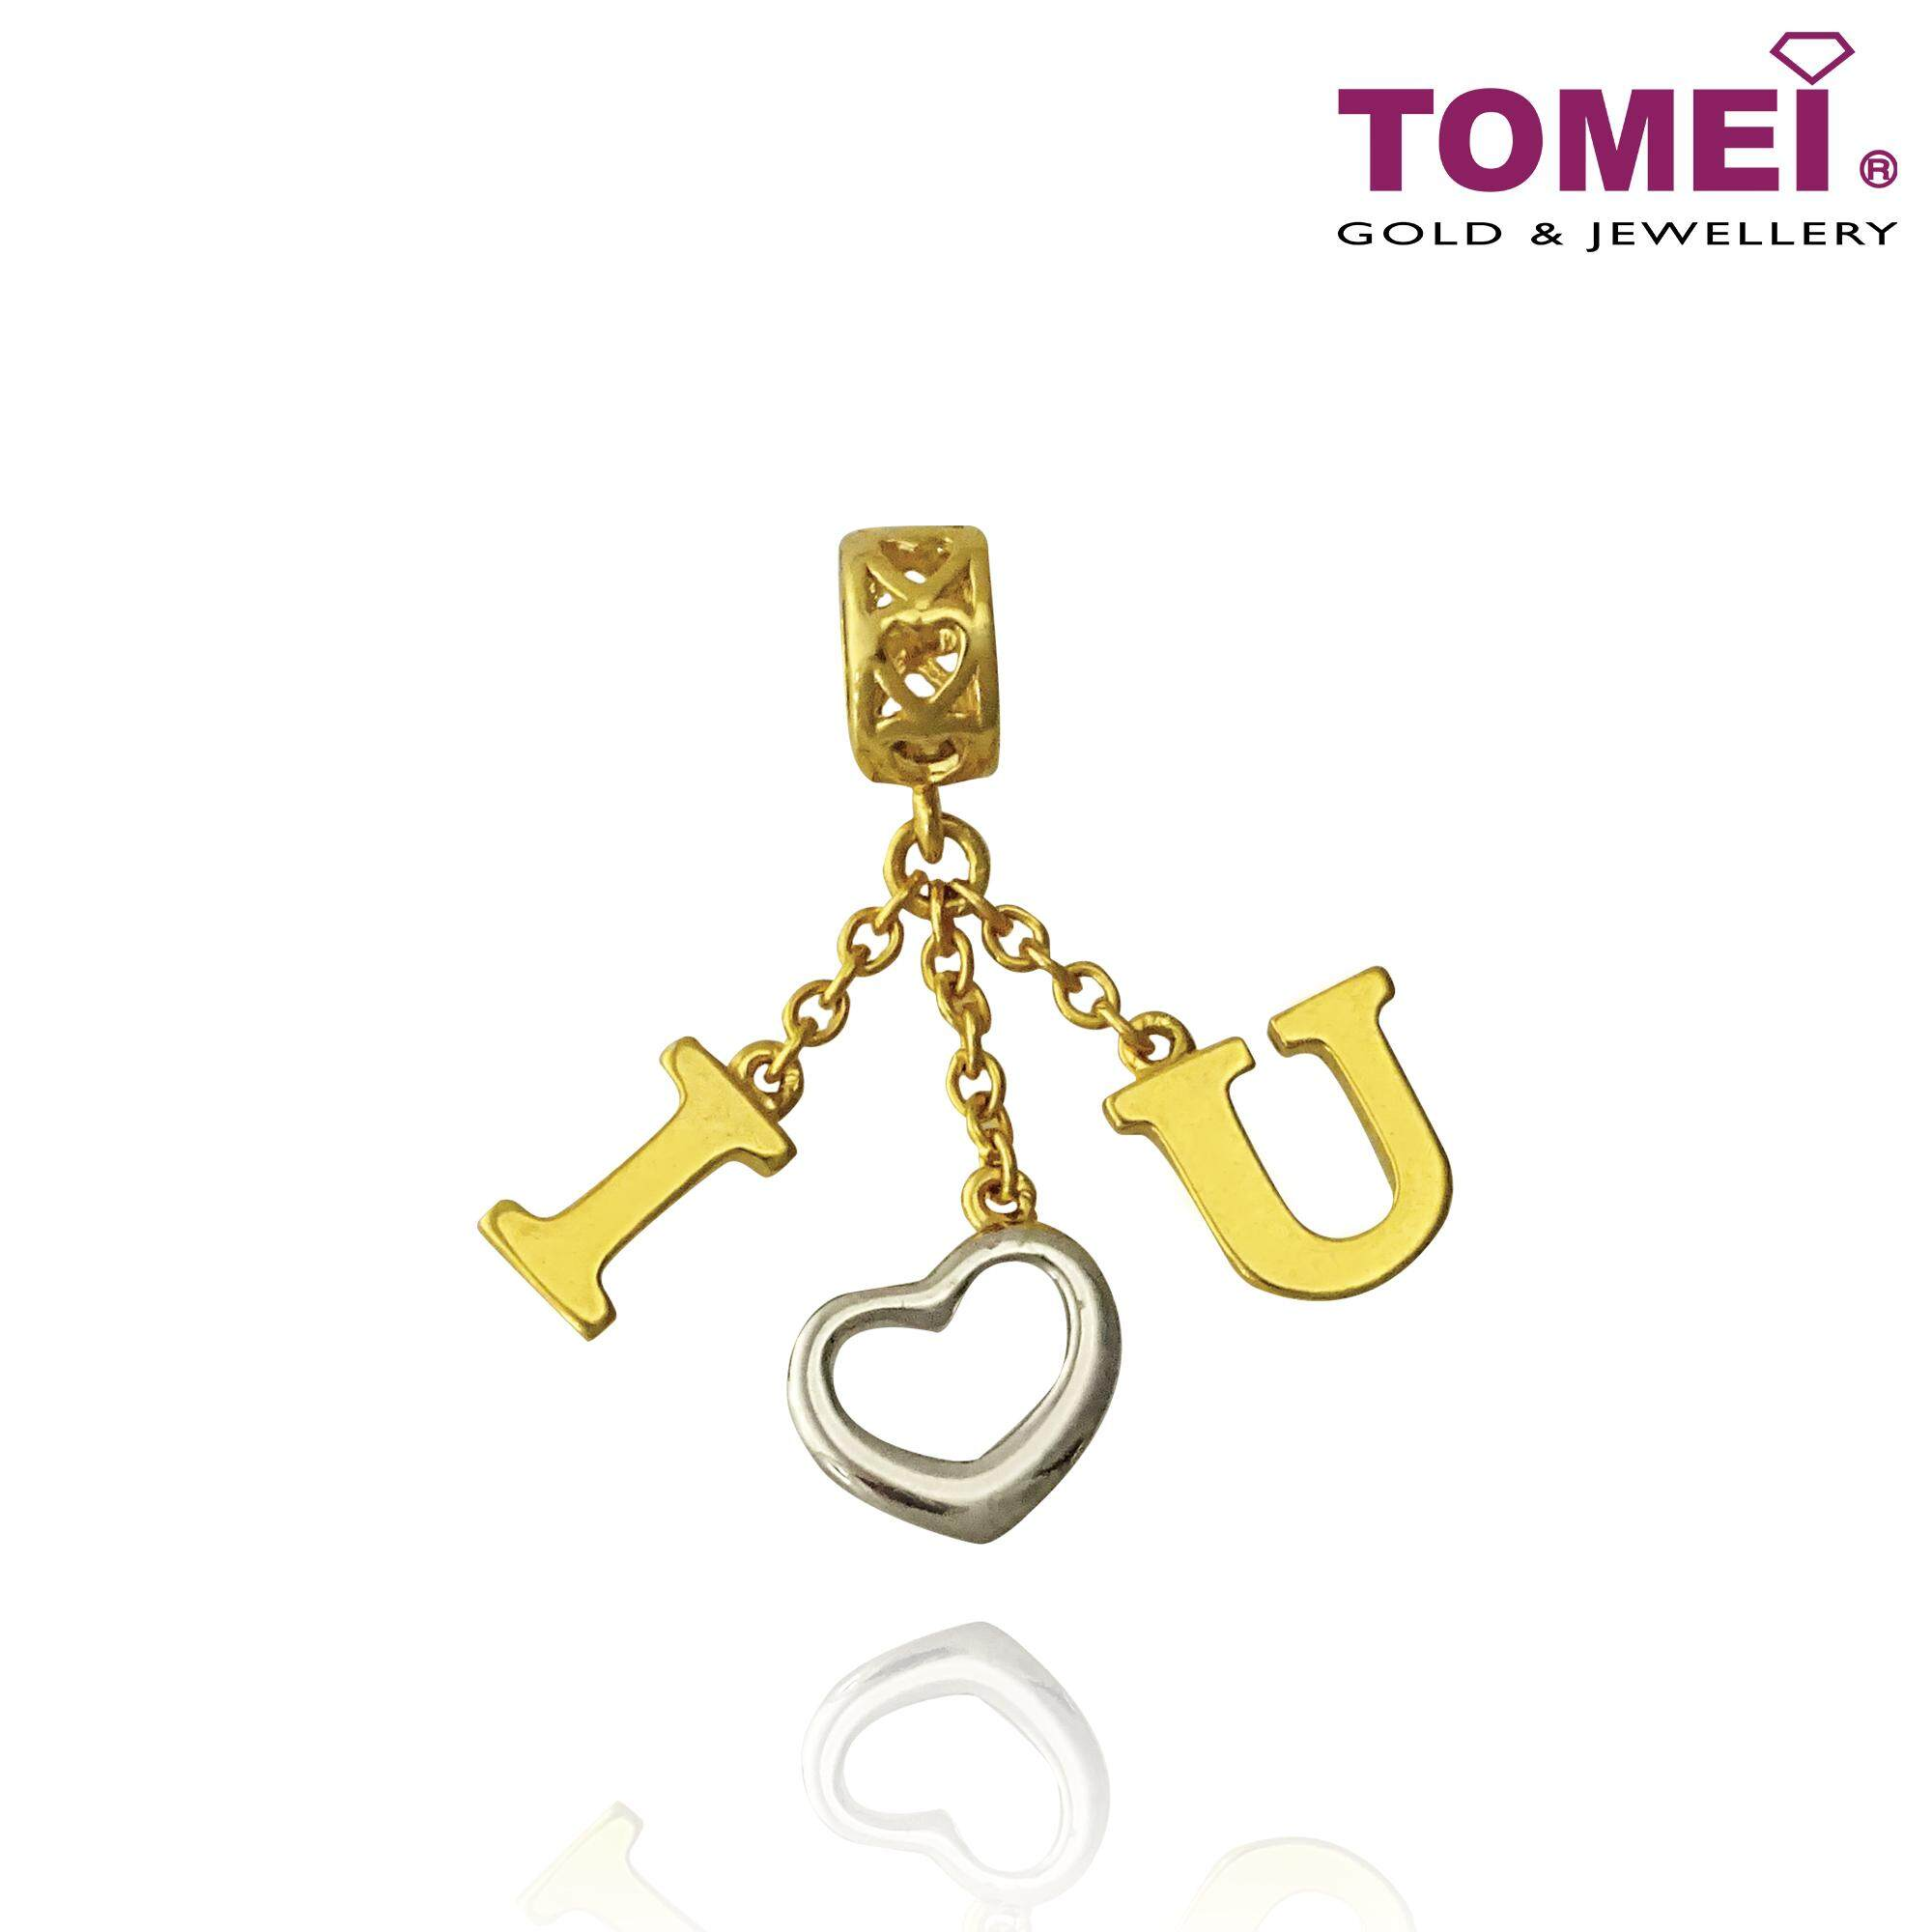 0a525760a 24K Gold Plated Hello Kitty Large Charm Pendant or Charm HIGH Quality